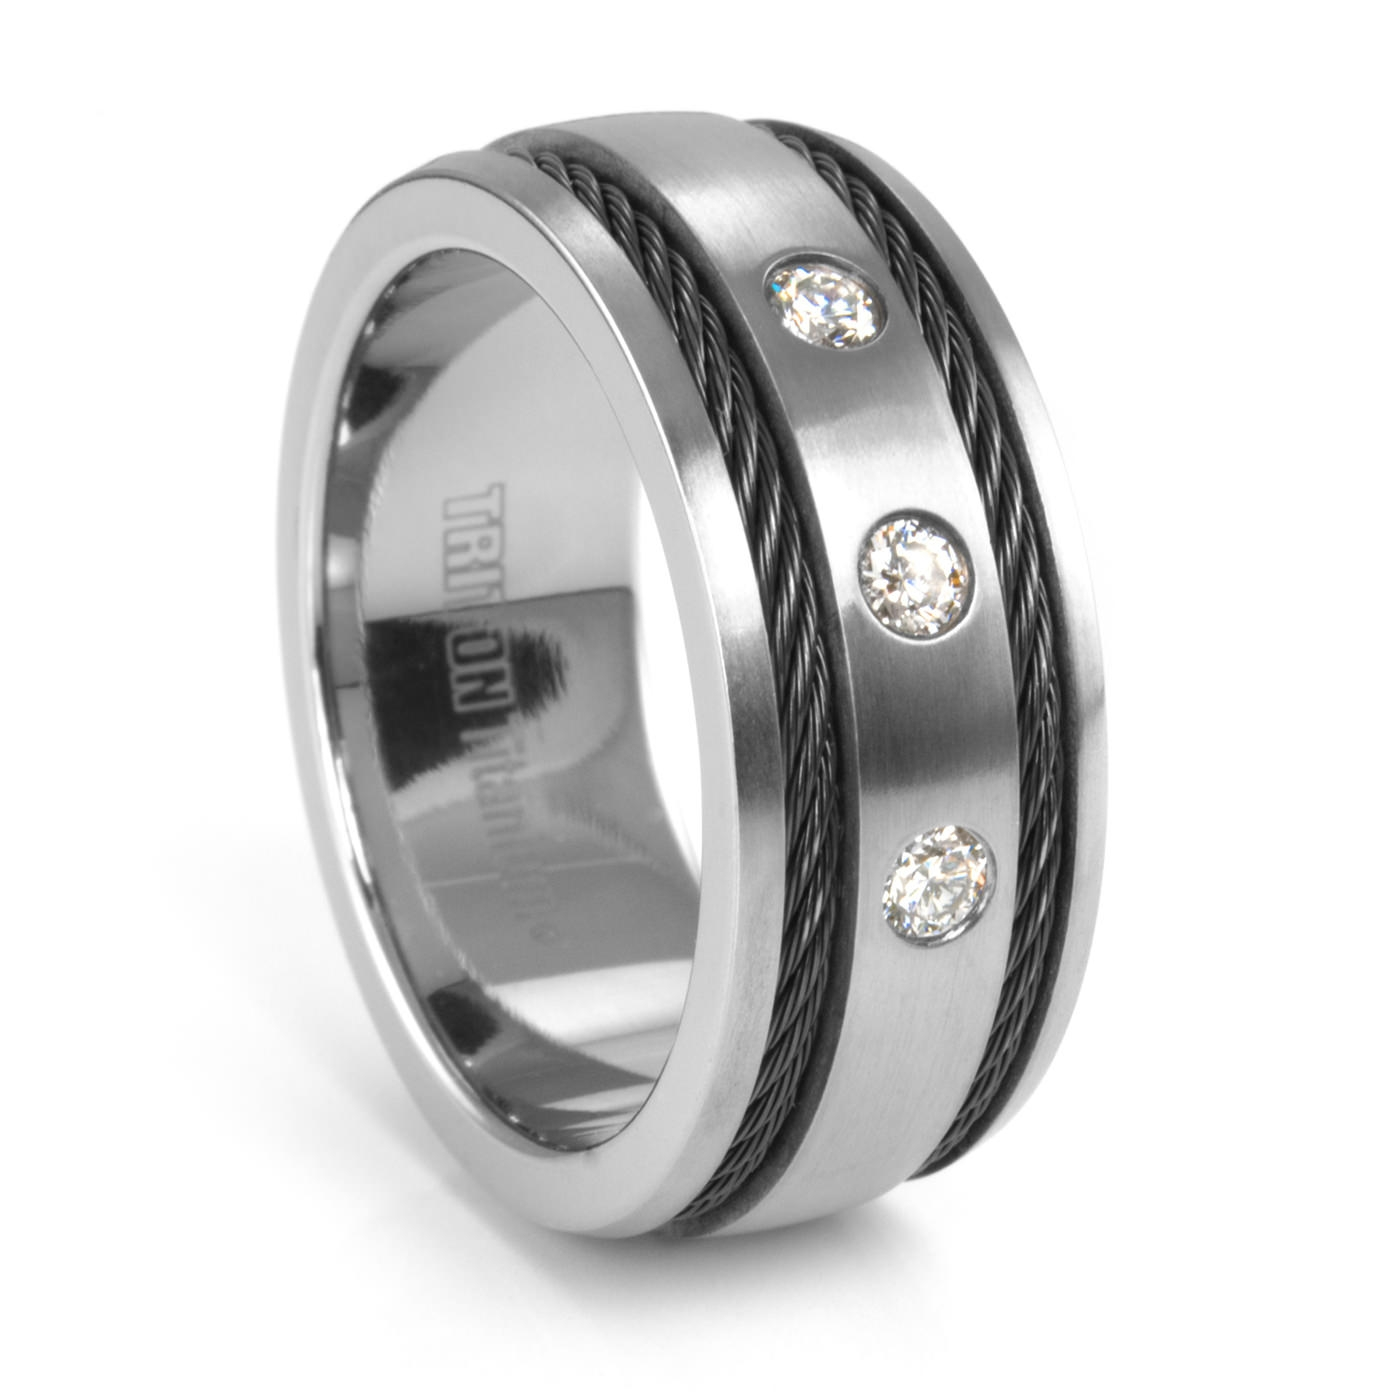 Fenton Men's Titanium Diamond Wedding Band – 9Mm – Triton Cable Ring Within Men's Titanium Wedding Bands With Diamonds (View 3 of 15)